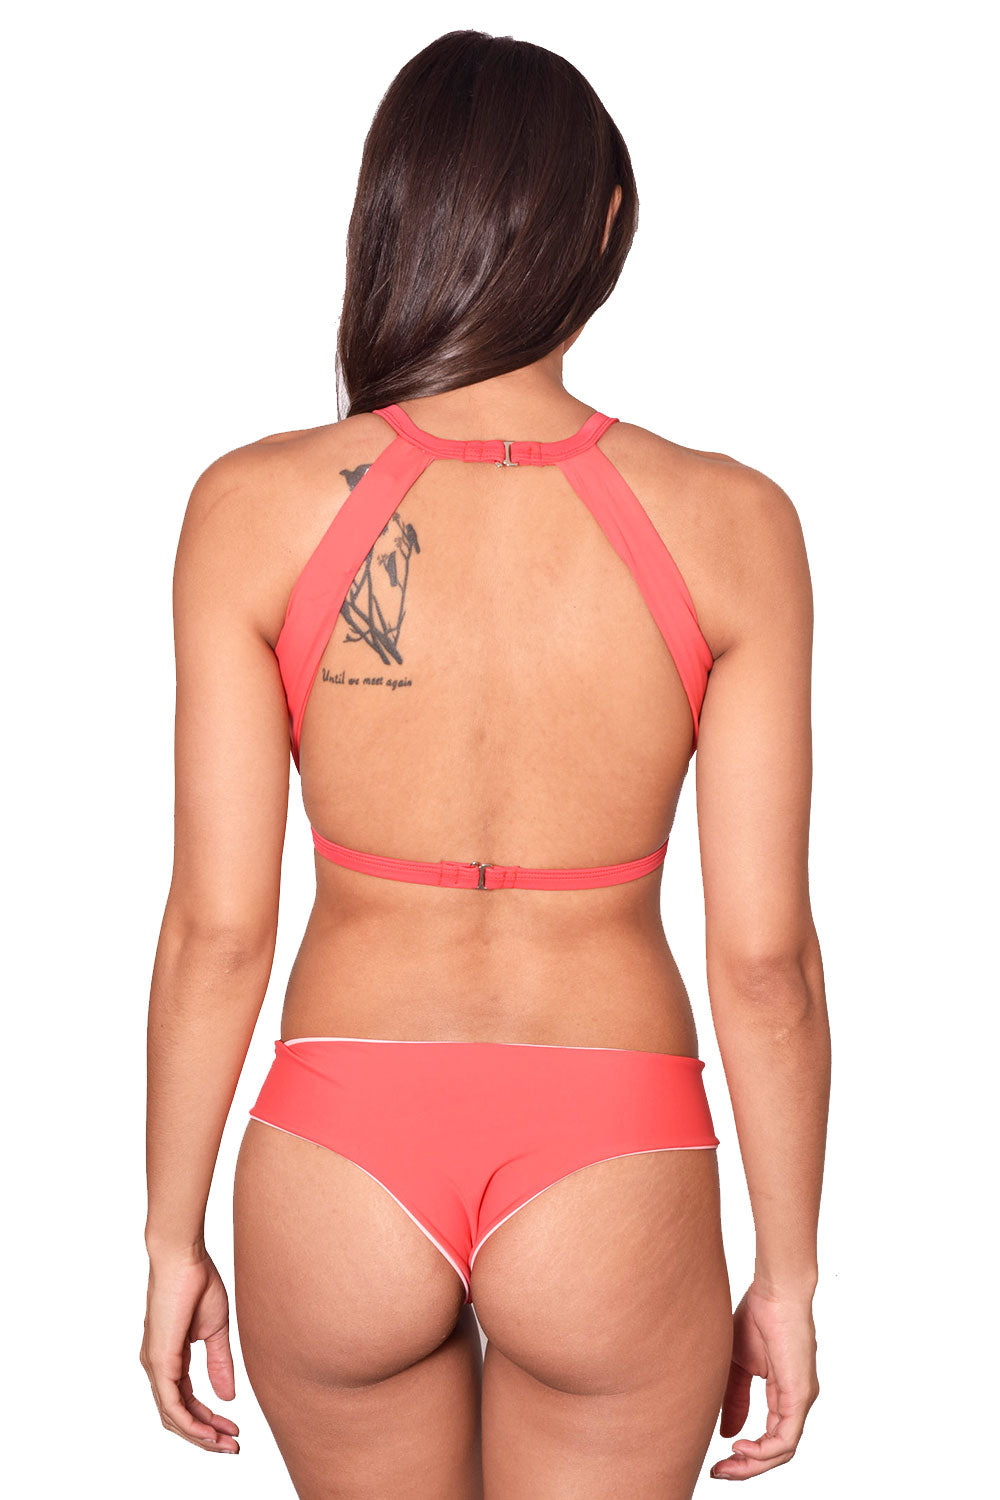 POISON RED Cropped Bikini Top - by Maya Swimwear